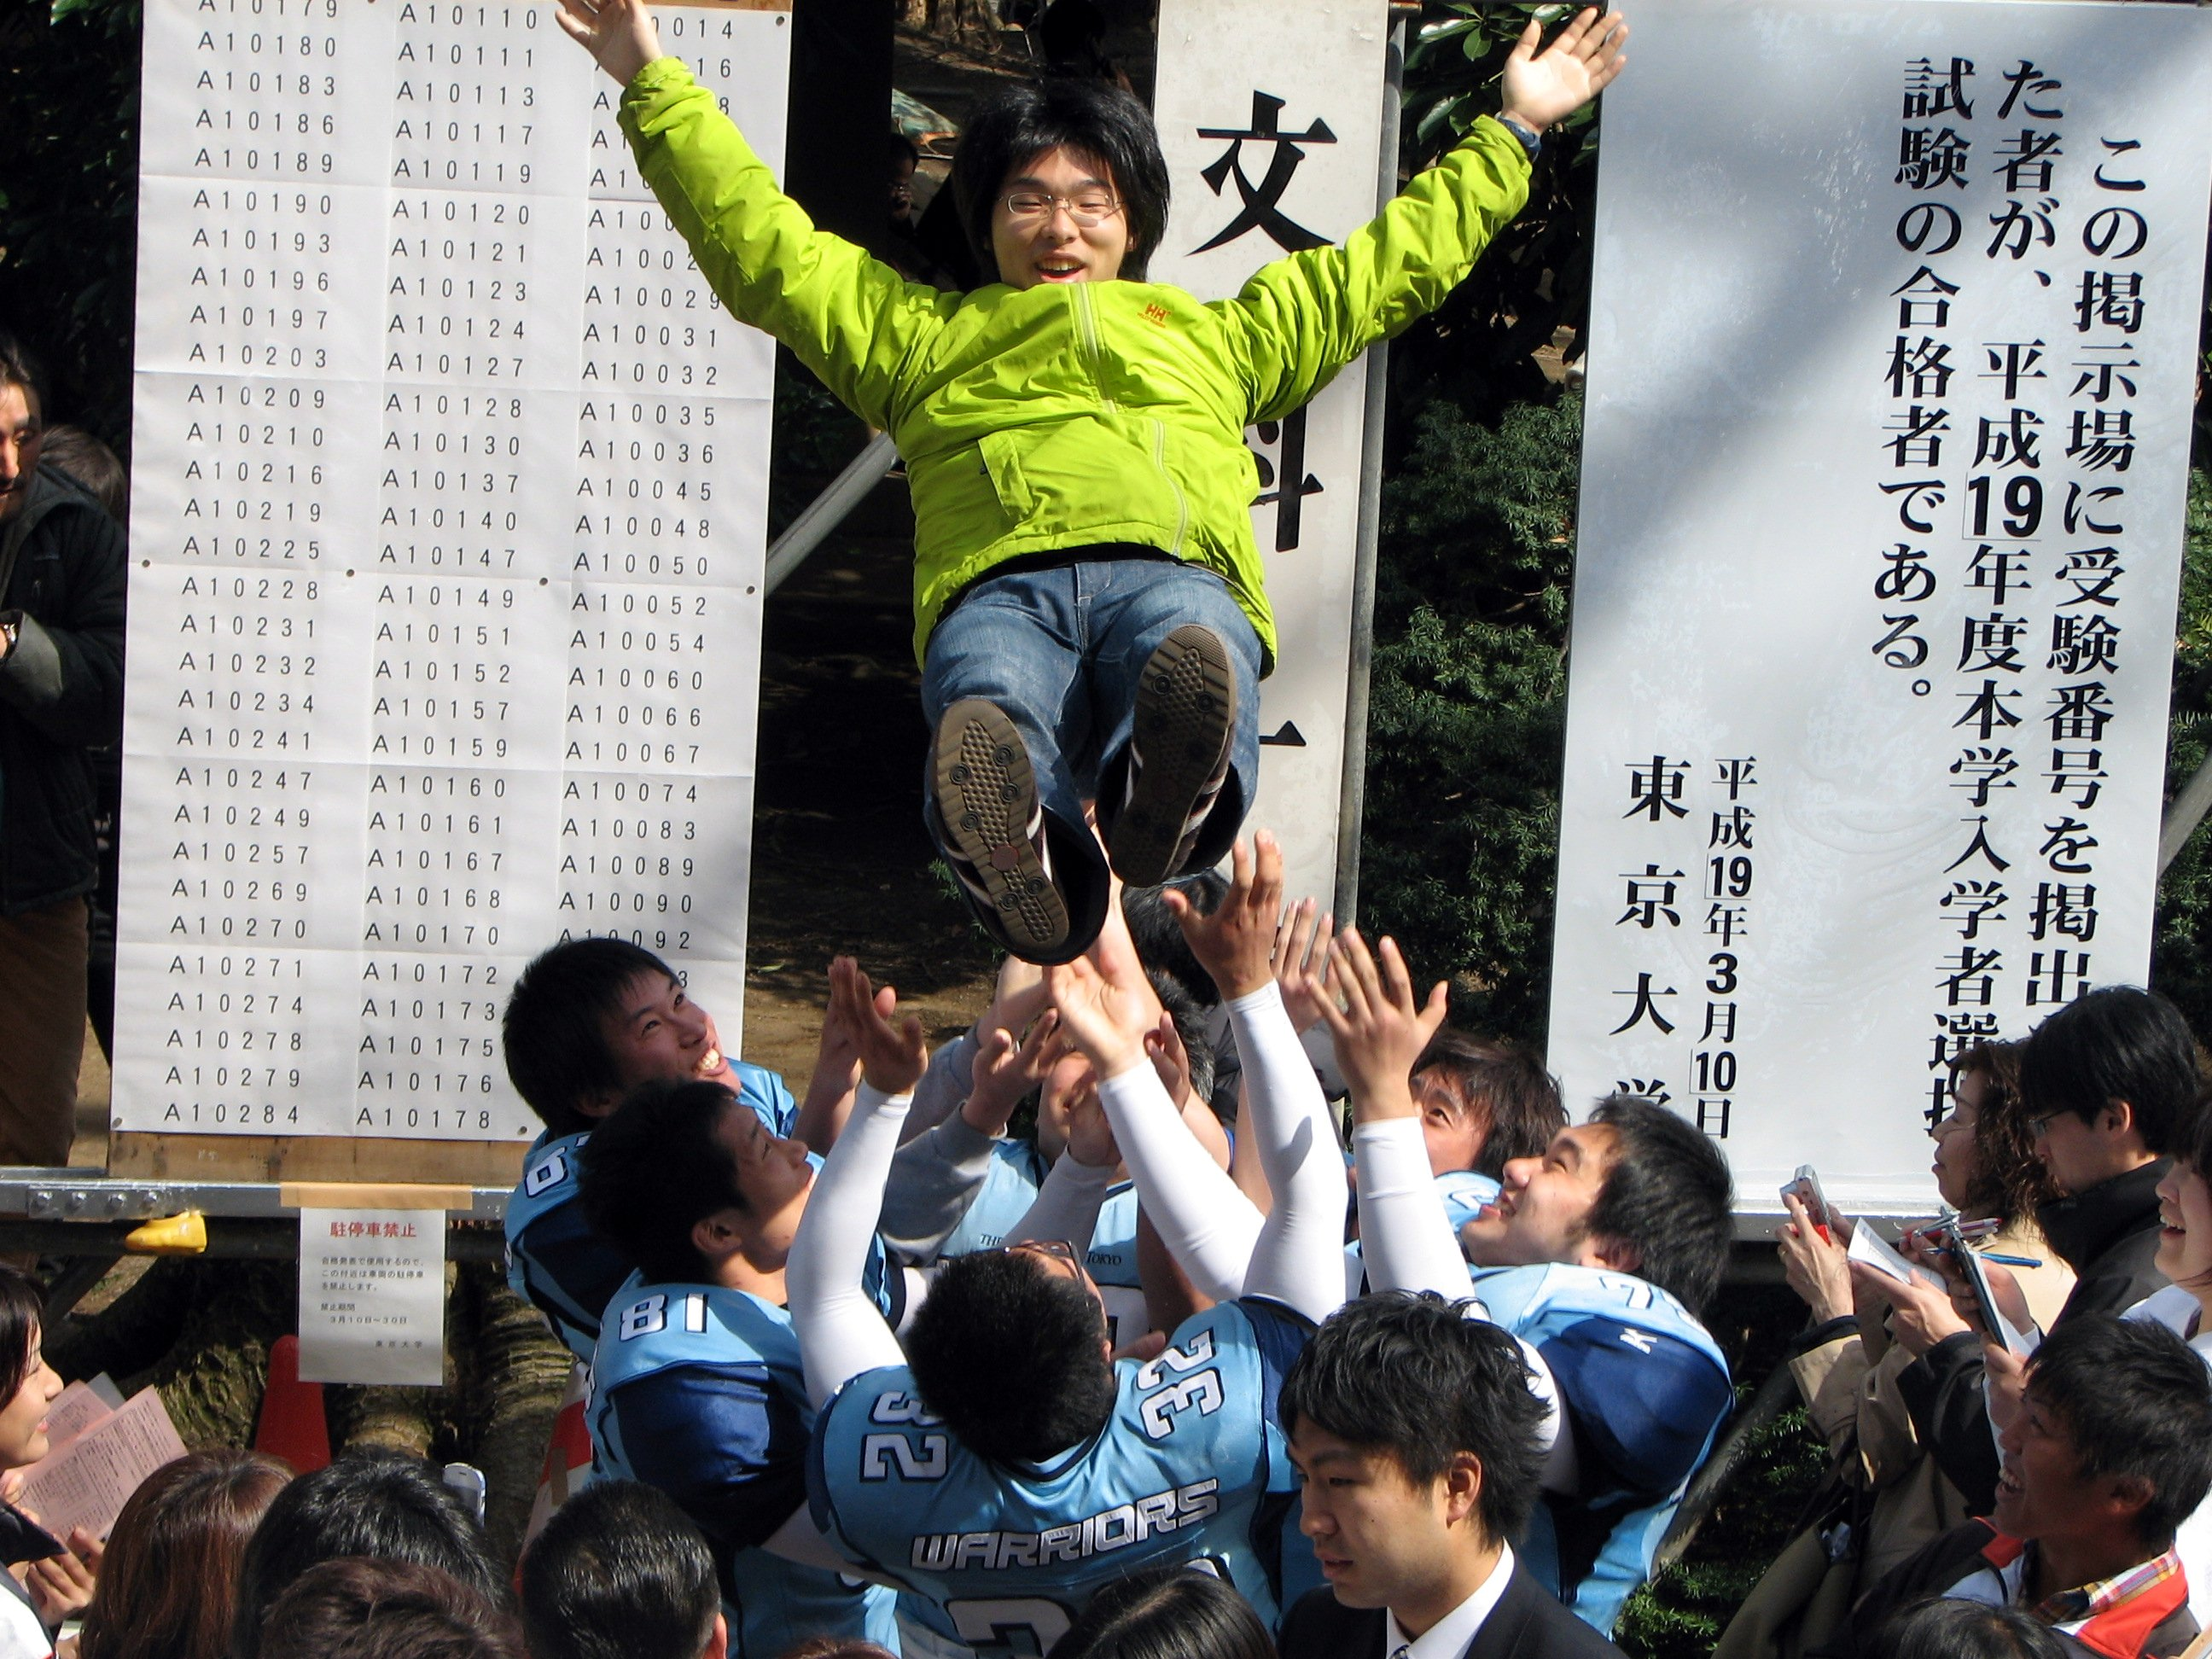 http://upload.wikimedia.org/wikipedia/commons/5/5e/Tokyo_University_Entrance_Exam_Results_4.JPG